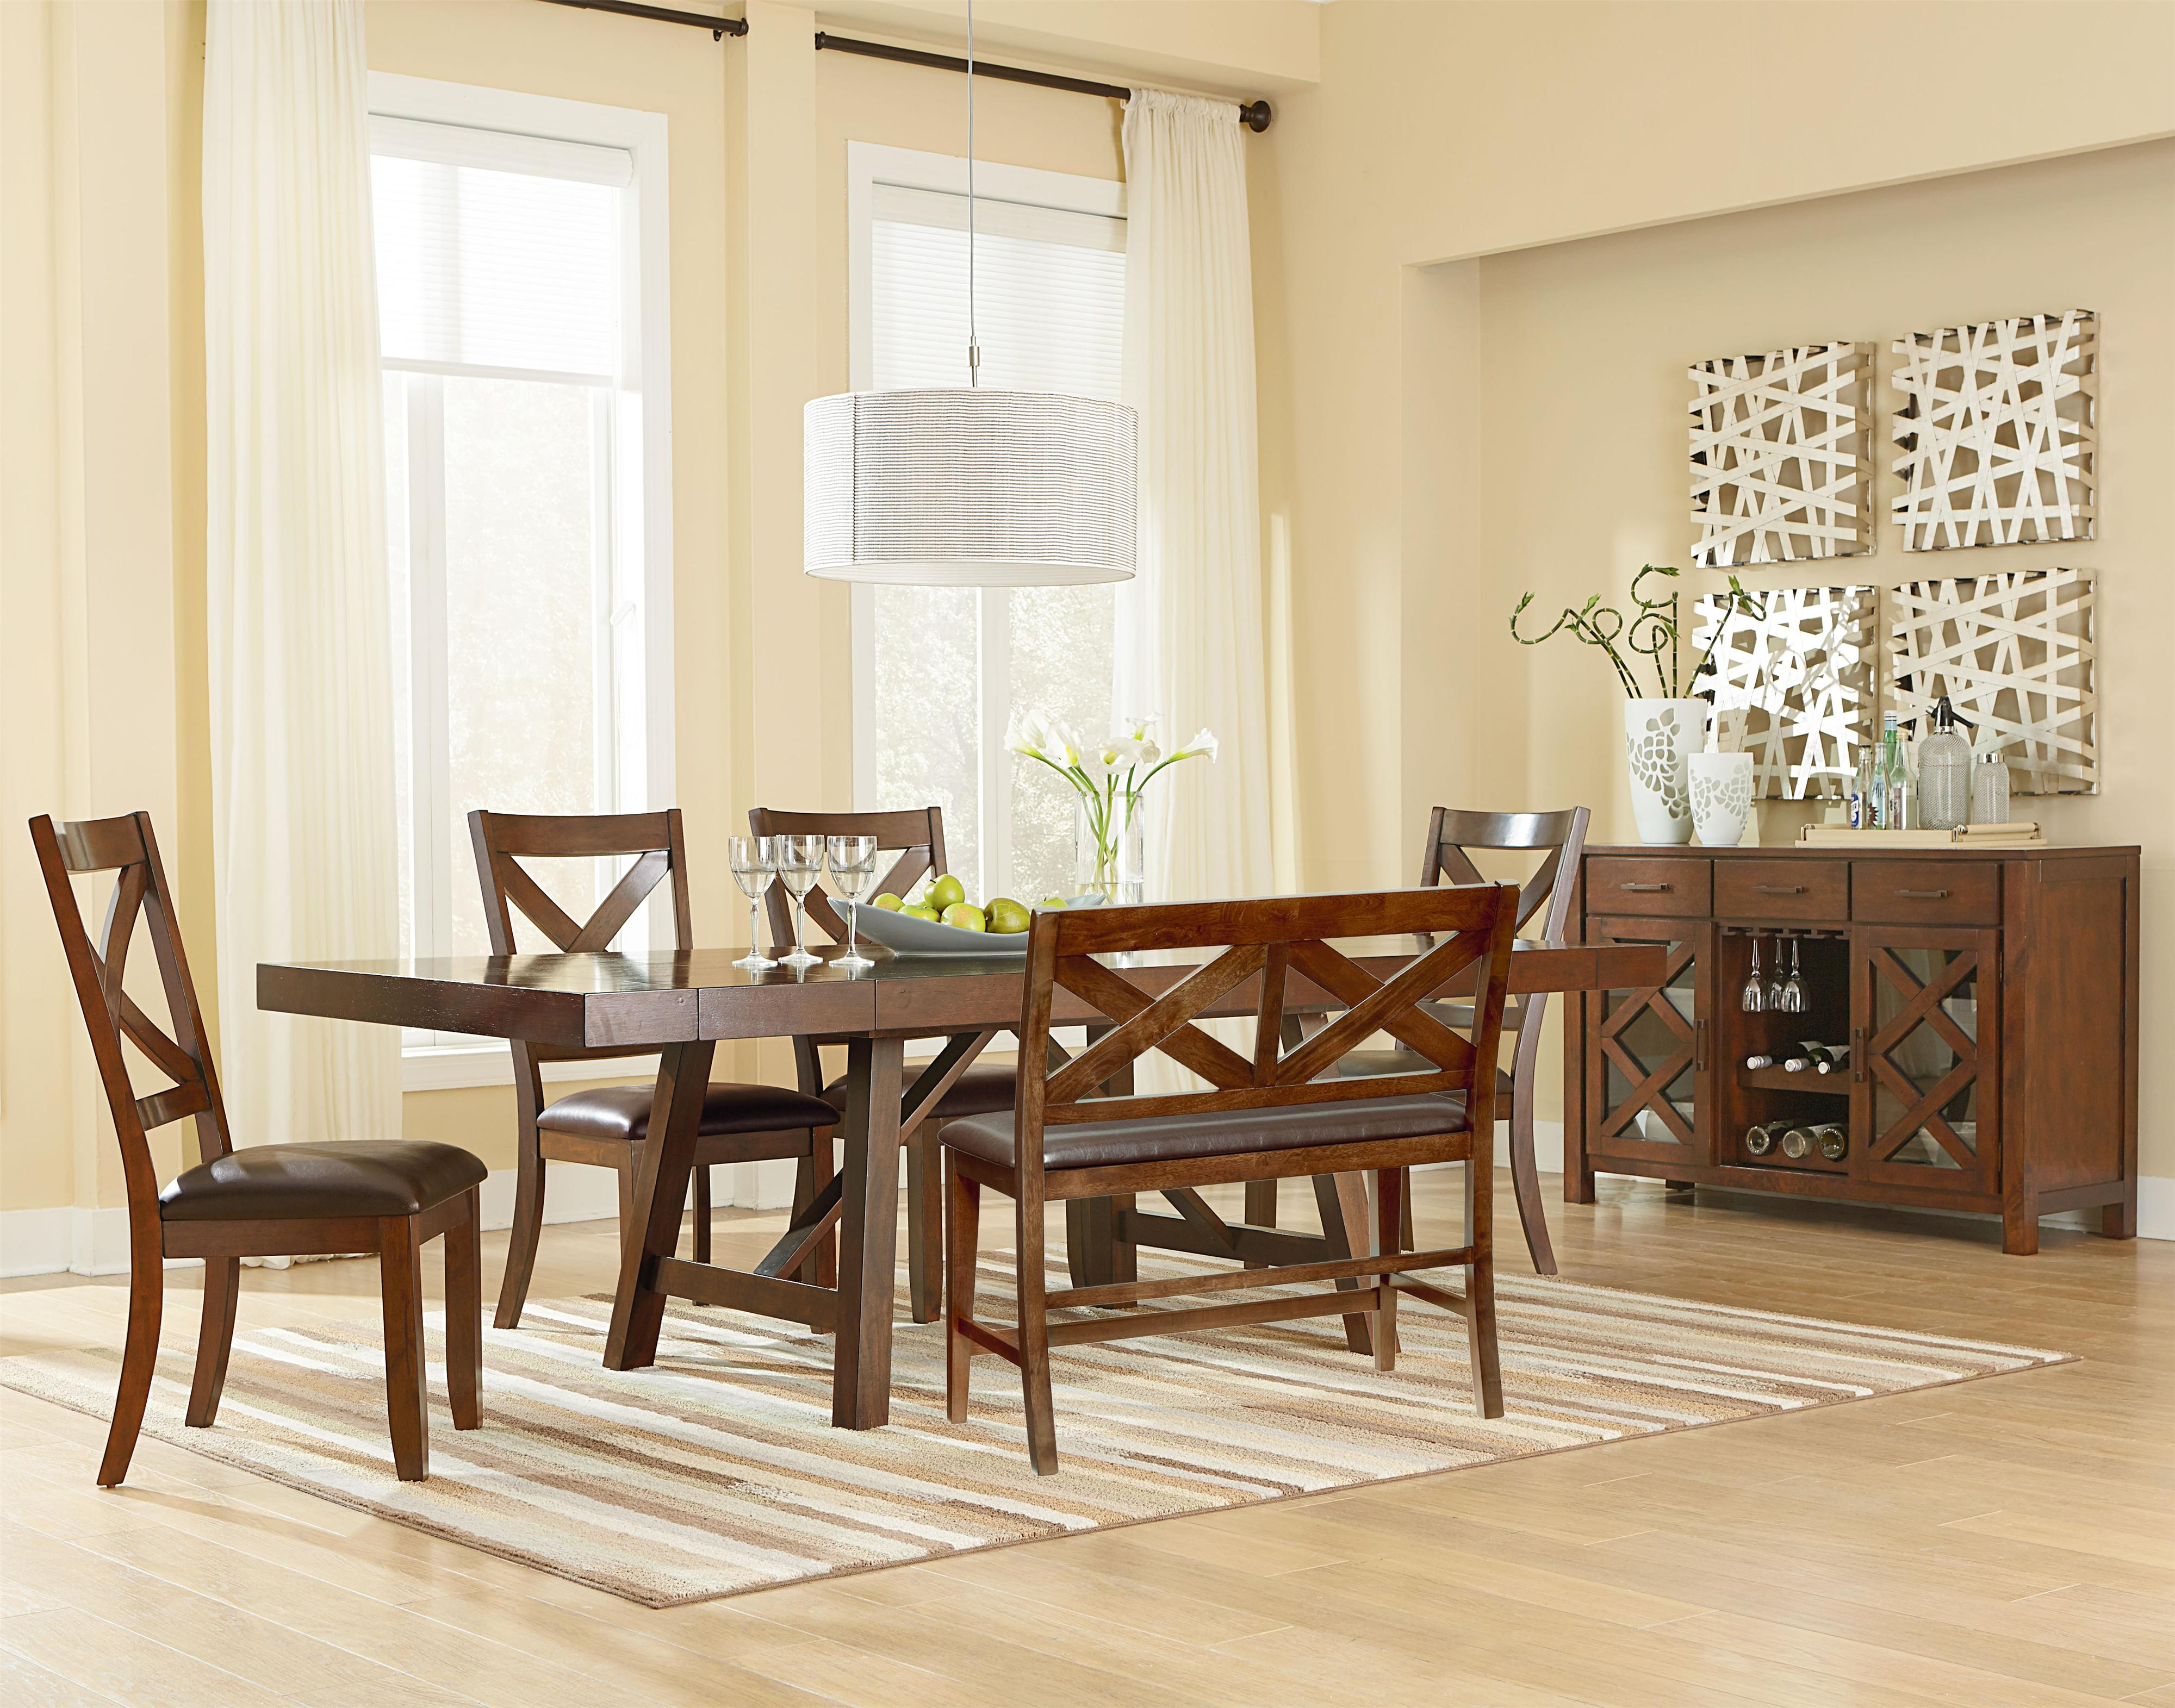 Standard Furniture Omaha Brown Casual Dining Room Group - Item Number: 16180 Dining Room Group 3